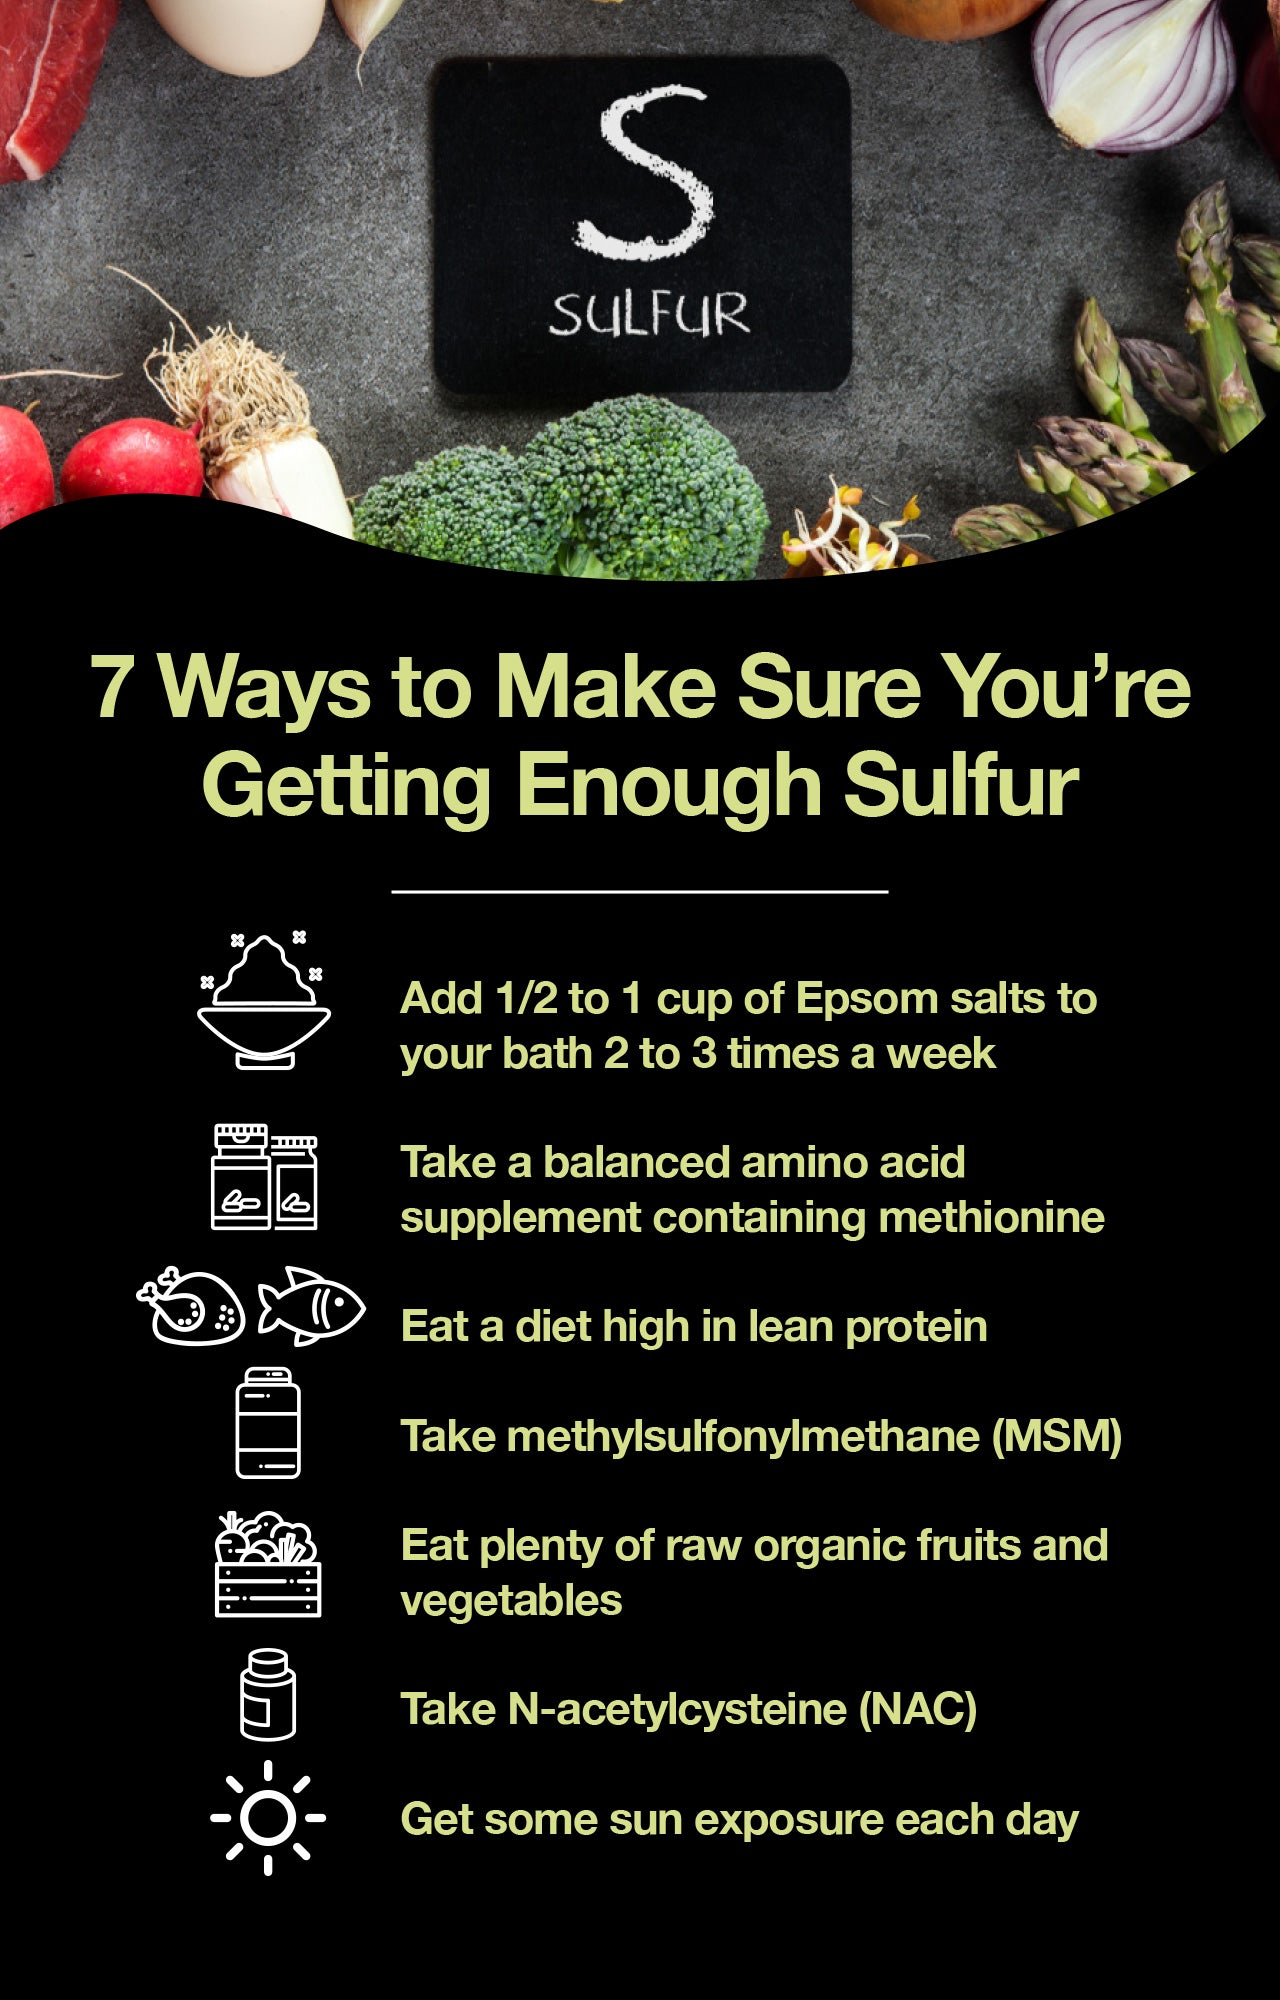 7 ways to make sure you're getting enough sulfur